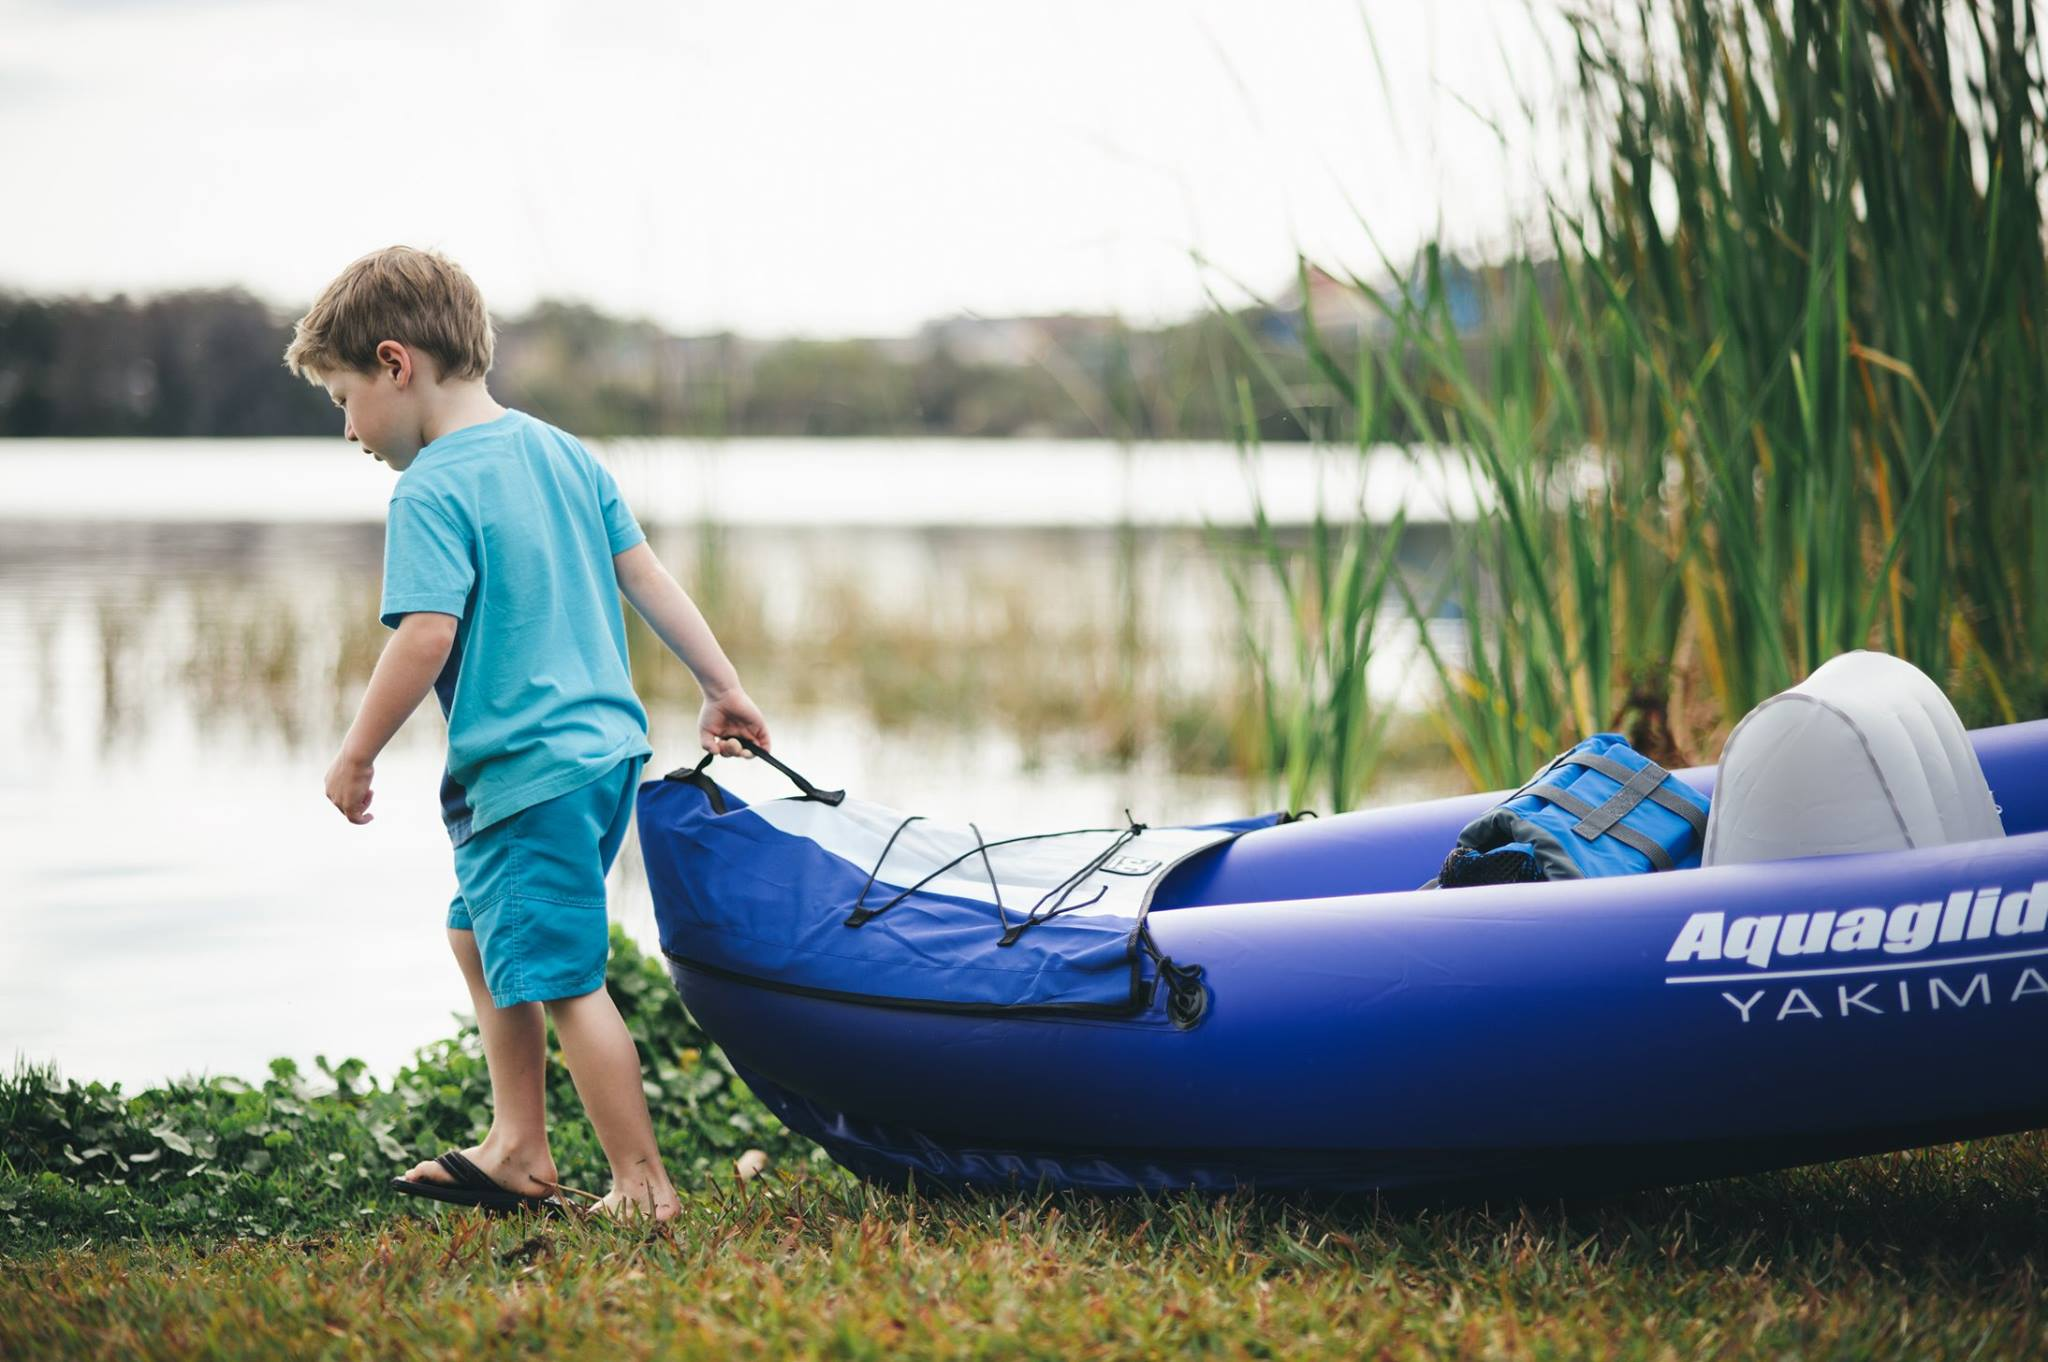 A boy drags an Aquaglide kayak across the grass toward a pond with reeds.